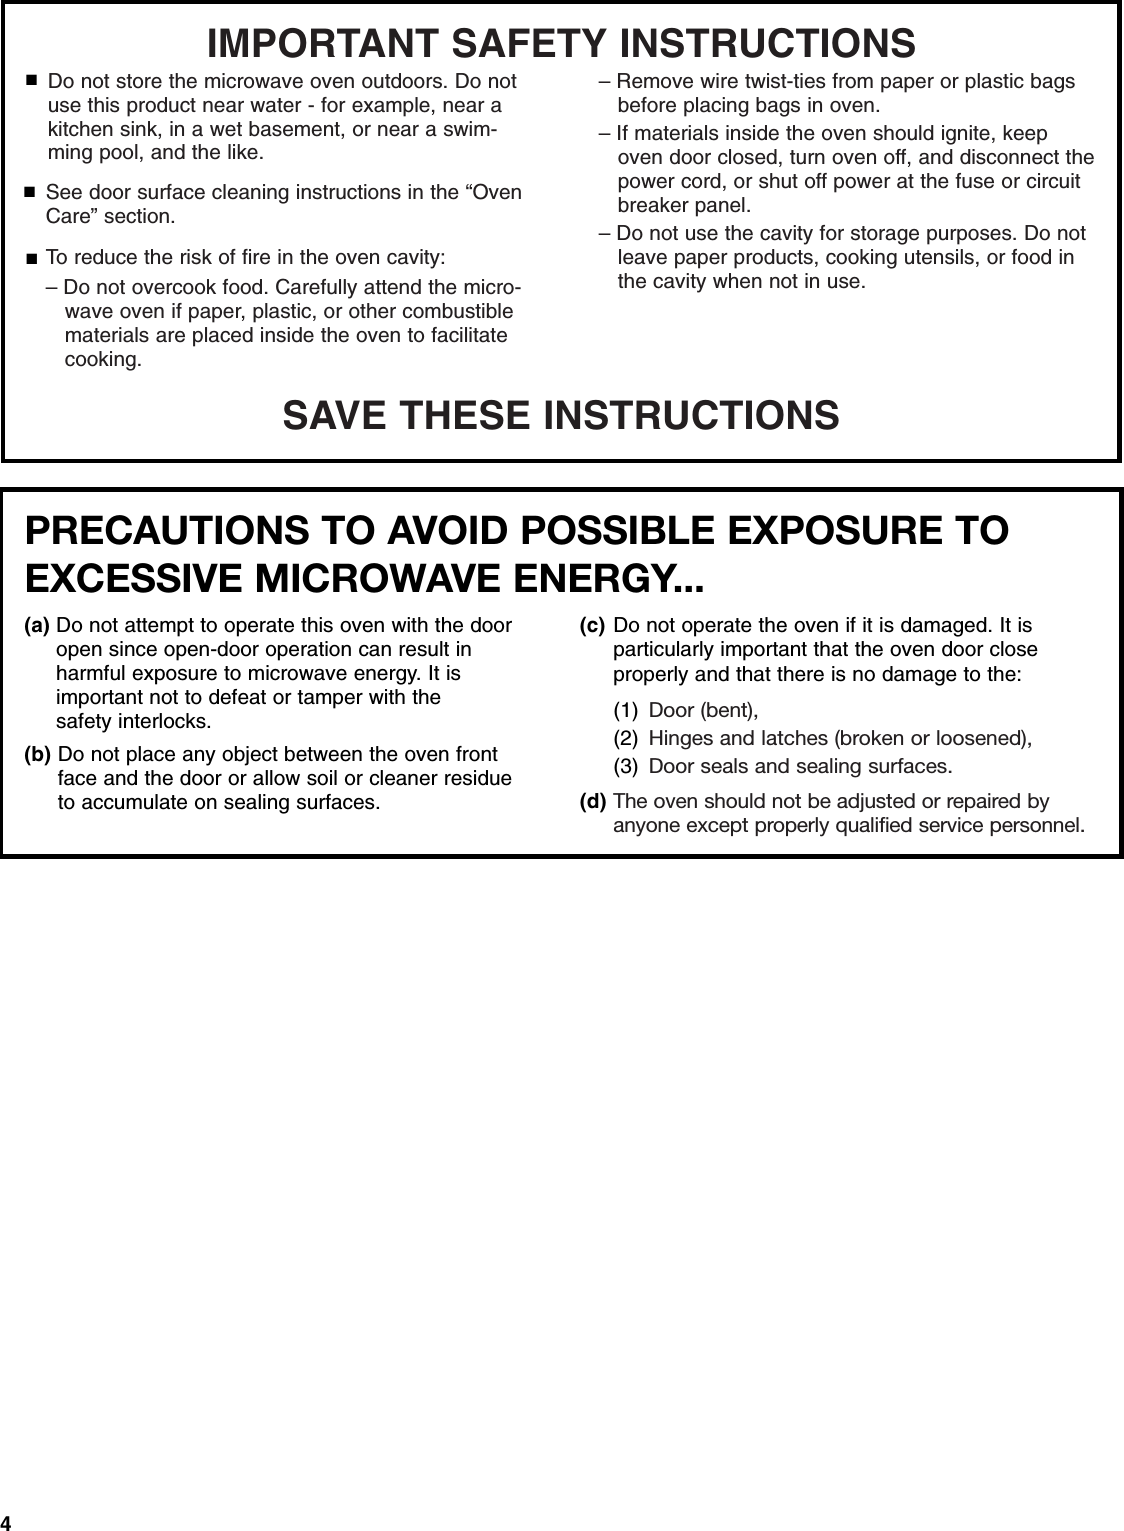 """4SAVE THESE INSTRUCTIONSIMPORTANT SAFETY INSTRUCTIONSSee door surface cleaning instructions in the """"Oven Care"""" section.To reduce the risk of fire in the oven cavity:– Do not overcook food. Carefully attend the micro-   wave oven if paper, plastic, or other combustible    materials are placed inside the oven to facilitate    cooking.■■■Do not store the microwave oven outdoors. Do not use this product near water - for example, near a kitchen sink, in a wet basement, or near a swim-ming pool, and the like.– Remove wire twist-ties from paper or plastic bags   before placing bags in oven.– If materials inside the oven should ignite, keep    oven door closed, turn oven off, and disconnect the    power cord, or shut off power at the fuse or circuit   breaker panel.– Do not use the cavity for storage purposes. Do not   leave paper products, cooking utensils, or food in    the cavity when not in use.PRECAUTIONS TO AVOID POSSIBLE EXPOSURE TO EXCESSIVE MICROWAVE ENERGY... (a) Do not attempt to operate this oven with the door open since open-door operation can result in harmful exposure to microwave energy. It isimportant not to defeat or tamper with the safety interlocks.(b) Do not place any object between the oven front face and the door or allow soil or cleaner residue to accumulate on sealing surfaces.(c) Do not operate the oven if it is damaged. It is particularly important that the oven door close properly and that there is no damage to the: (1) Door (bent),(2) Hinges and latches (broken or loosened), (3) Door seals and sealing surfaces.(d) The oven should not be adjusted or repaired by anyone except properly qualified service personnel."""